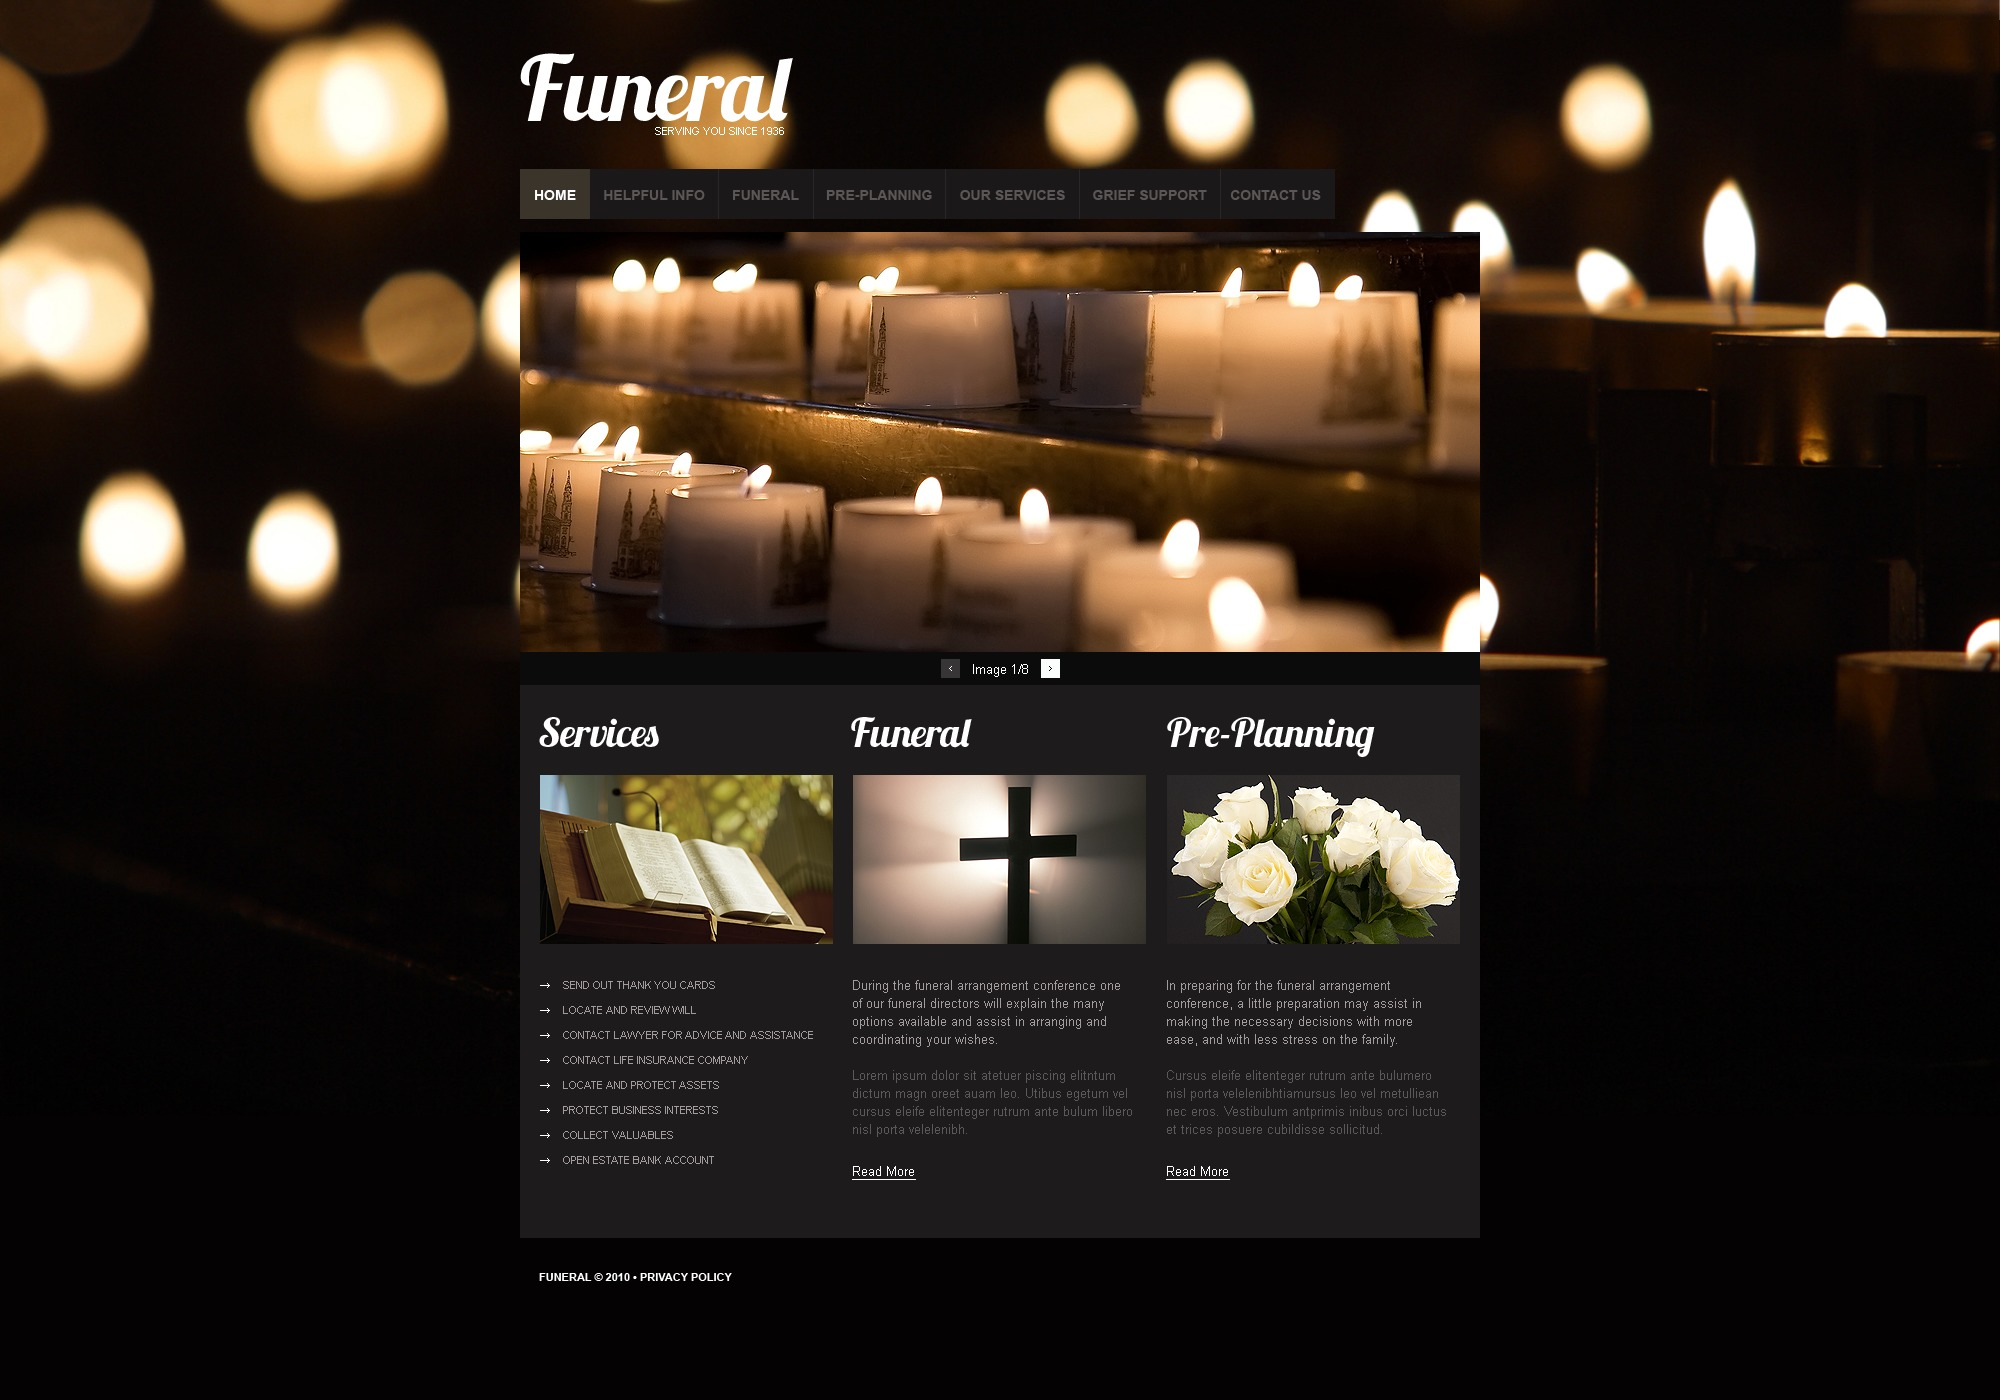 The Funeral Company PSD Design 54489, one of the best PSD templates of its kind (society & culture, most popular, wide, jquery), also known as funeral company PSD template, services PSD template, casket PSD template, urn PSD template, special coffin PSD template, grave PSD template, metal PSD template, inner PSD template, boxes PSD template, burial PSD template, funeral PSD template, train PSD template, undertaker PSD template, office PSD template, knell PSD template, dead PSD template, march PSD template, memorial PSD template, tombstone PSD template, flowers PSD template, wreath PSD template, organization PSD template, decorations PSD template, crosses PSD template, obituary PSD template, notice PSD template, equipment and related with funeral company, services, casket, urn, special coffin, grave, metal, inner, boxes, burial, funeral, train, undertaker, office, knell, dead, march, memorial, tombstone, flowers, wreath, organization, decorations, crosses, obituary, notice, equipment, etc.